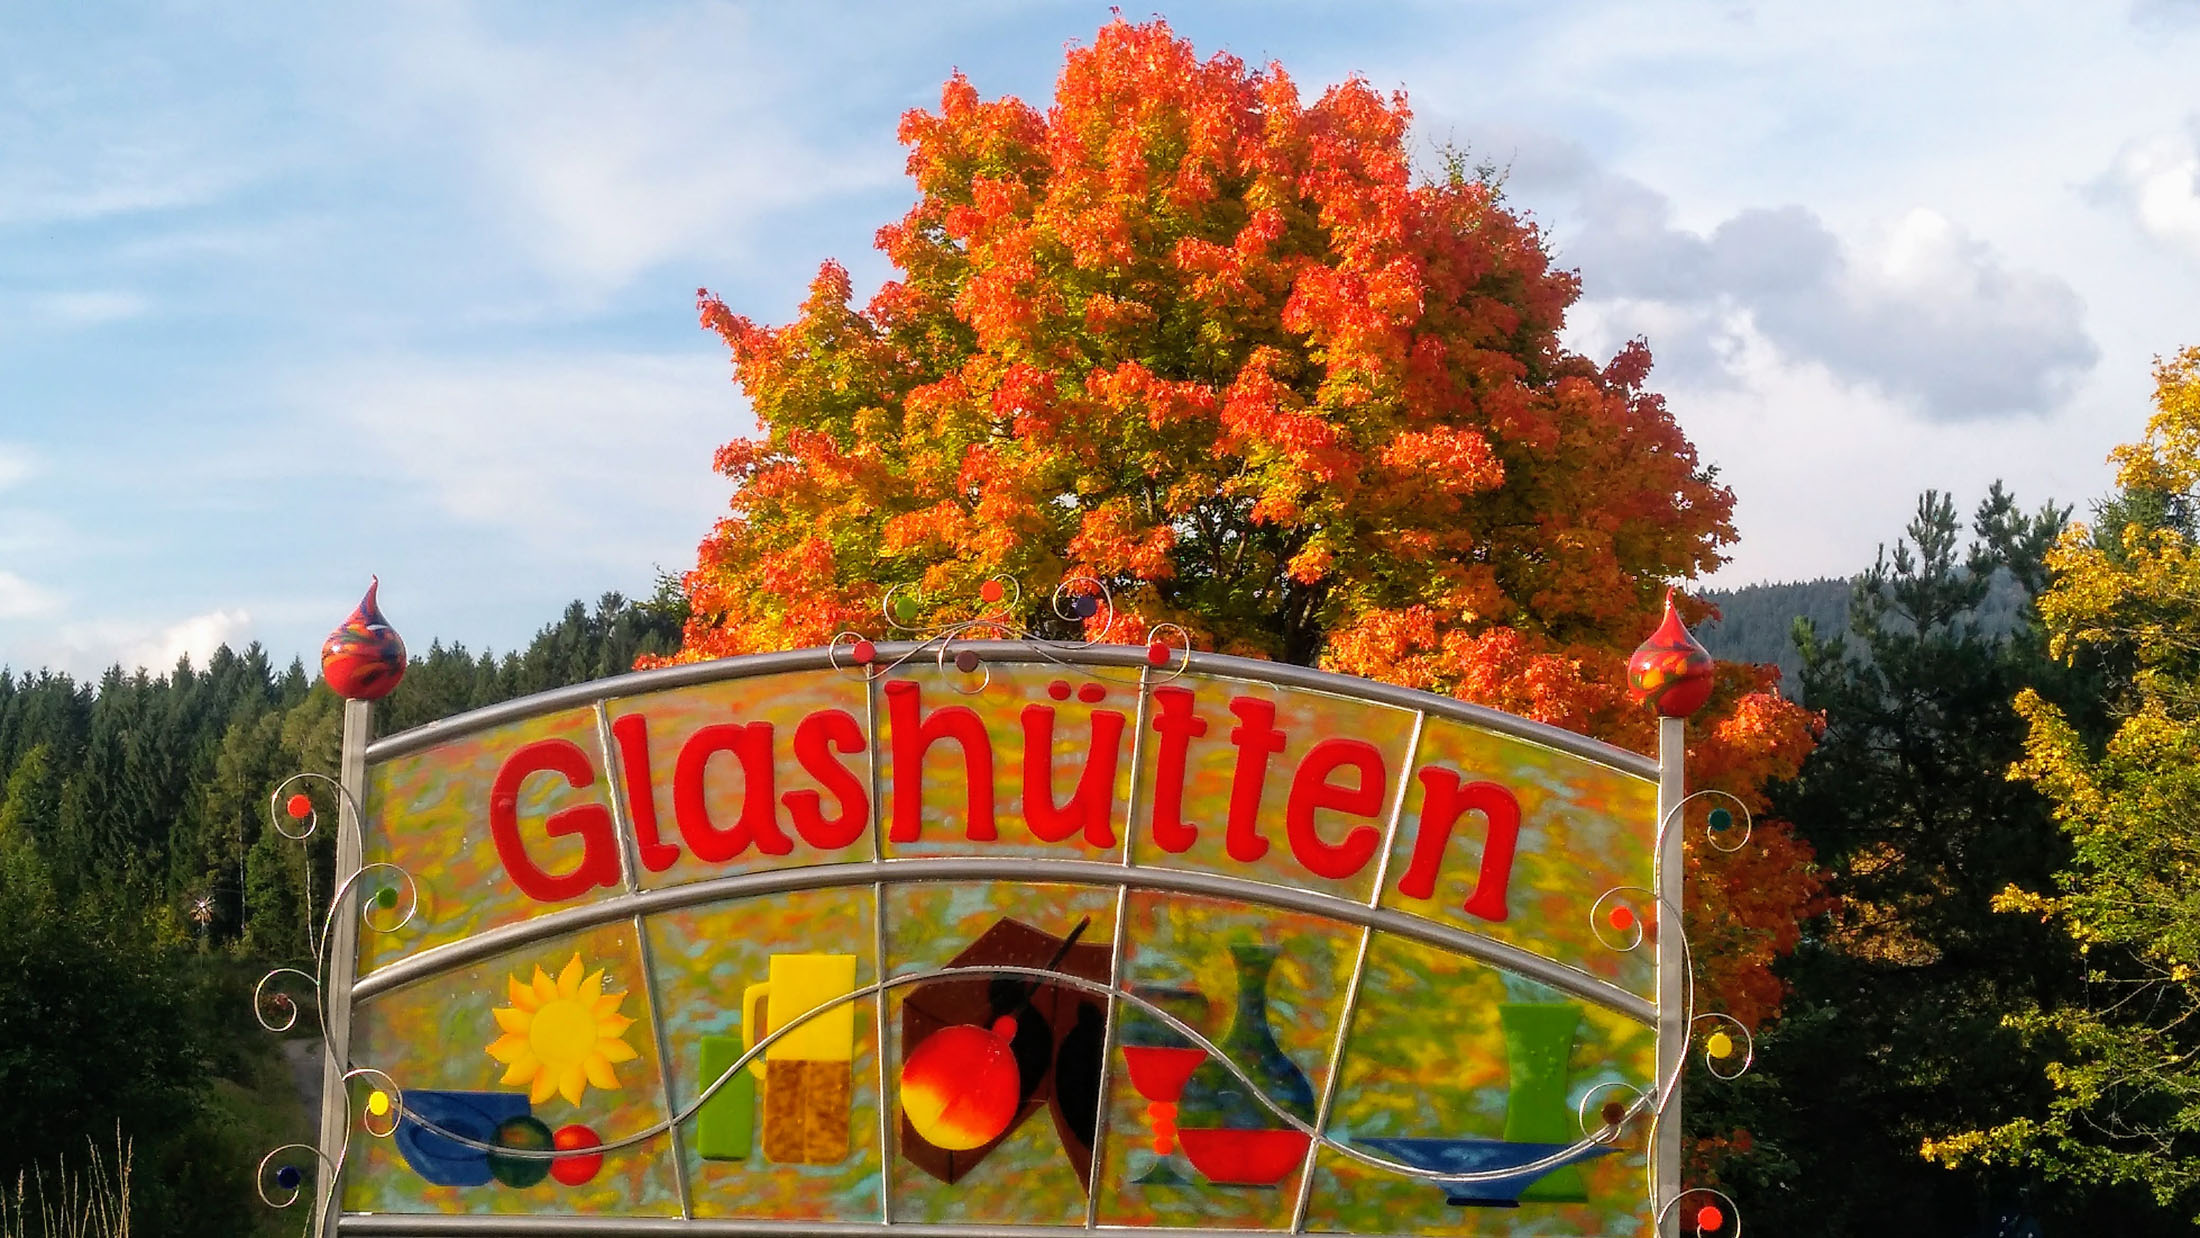 The production and processing of glass has a tradition spanning over 700 years in the Bavarian Forest and the Upper Palatinate Forest - Glashütten im Bayerischen Wald und Oberpfälzer Wald